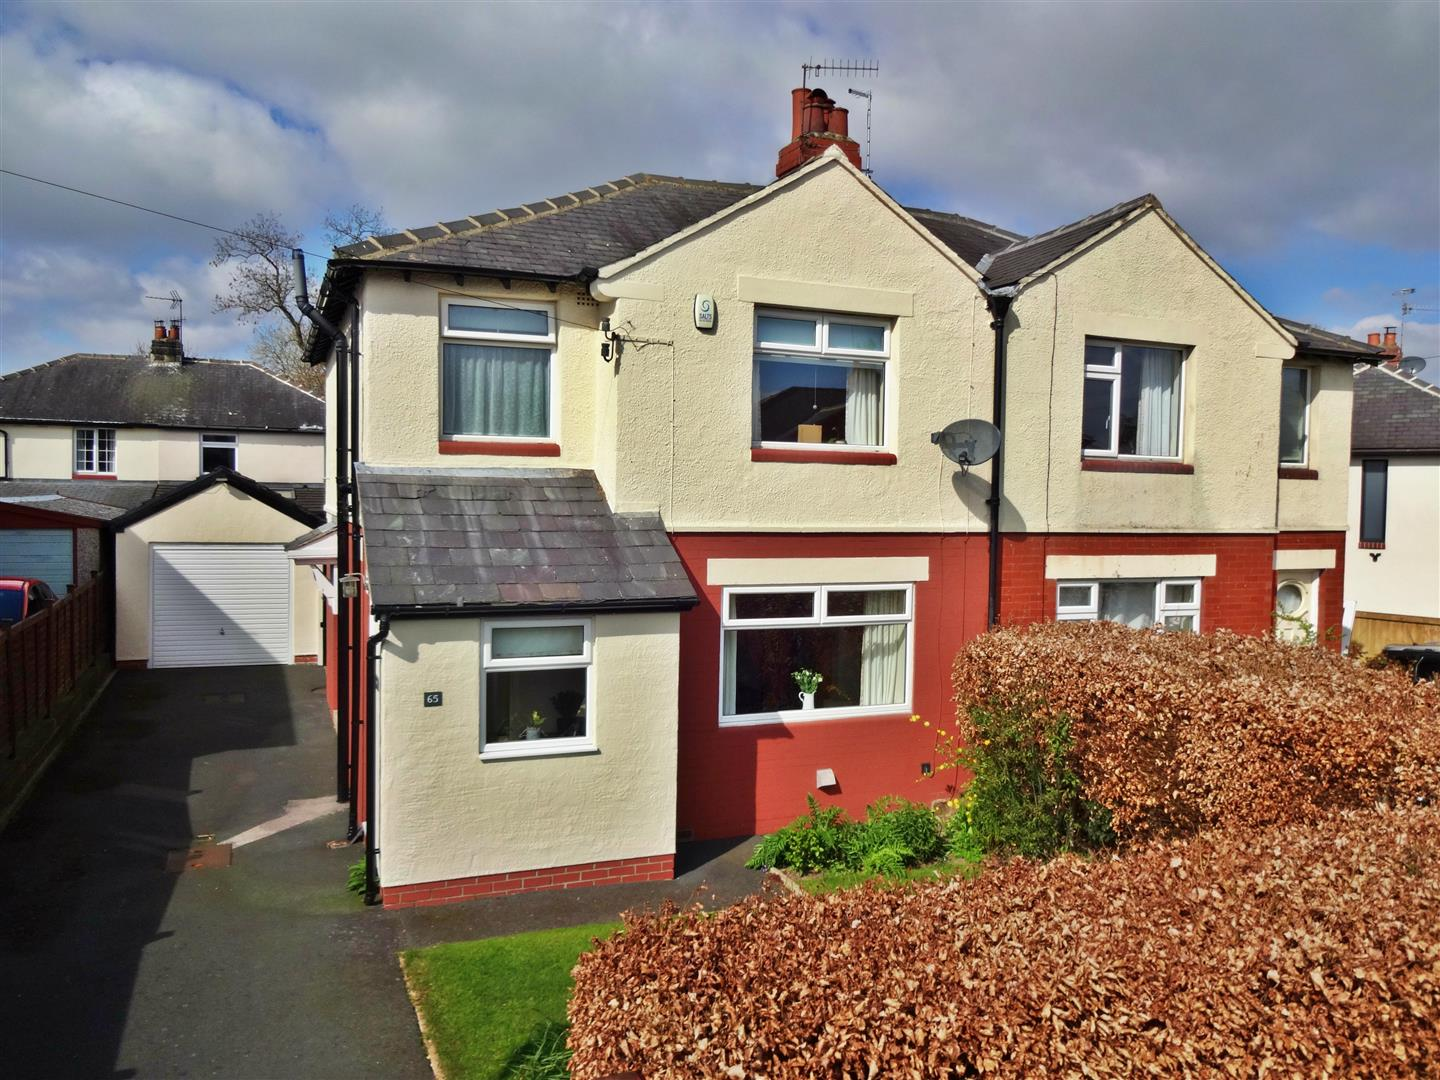 Leathley Crescent, Menston, LS29 6DH